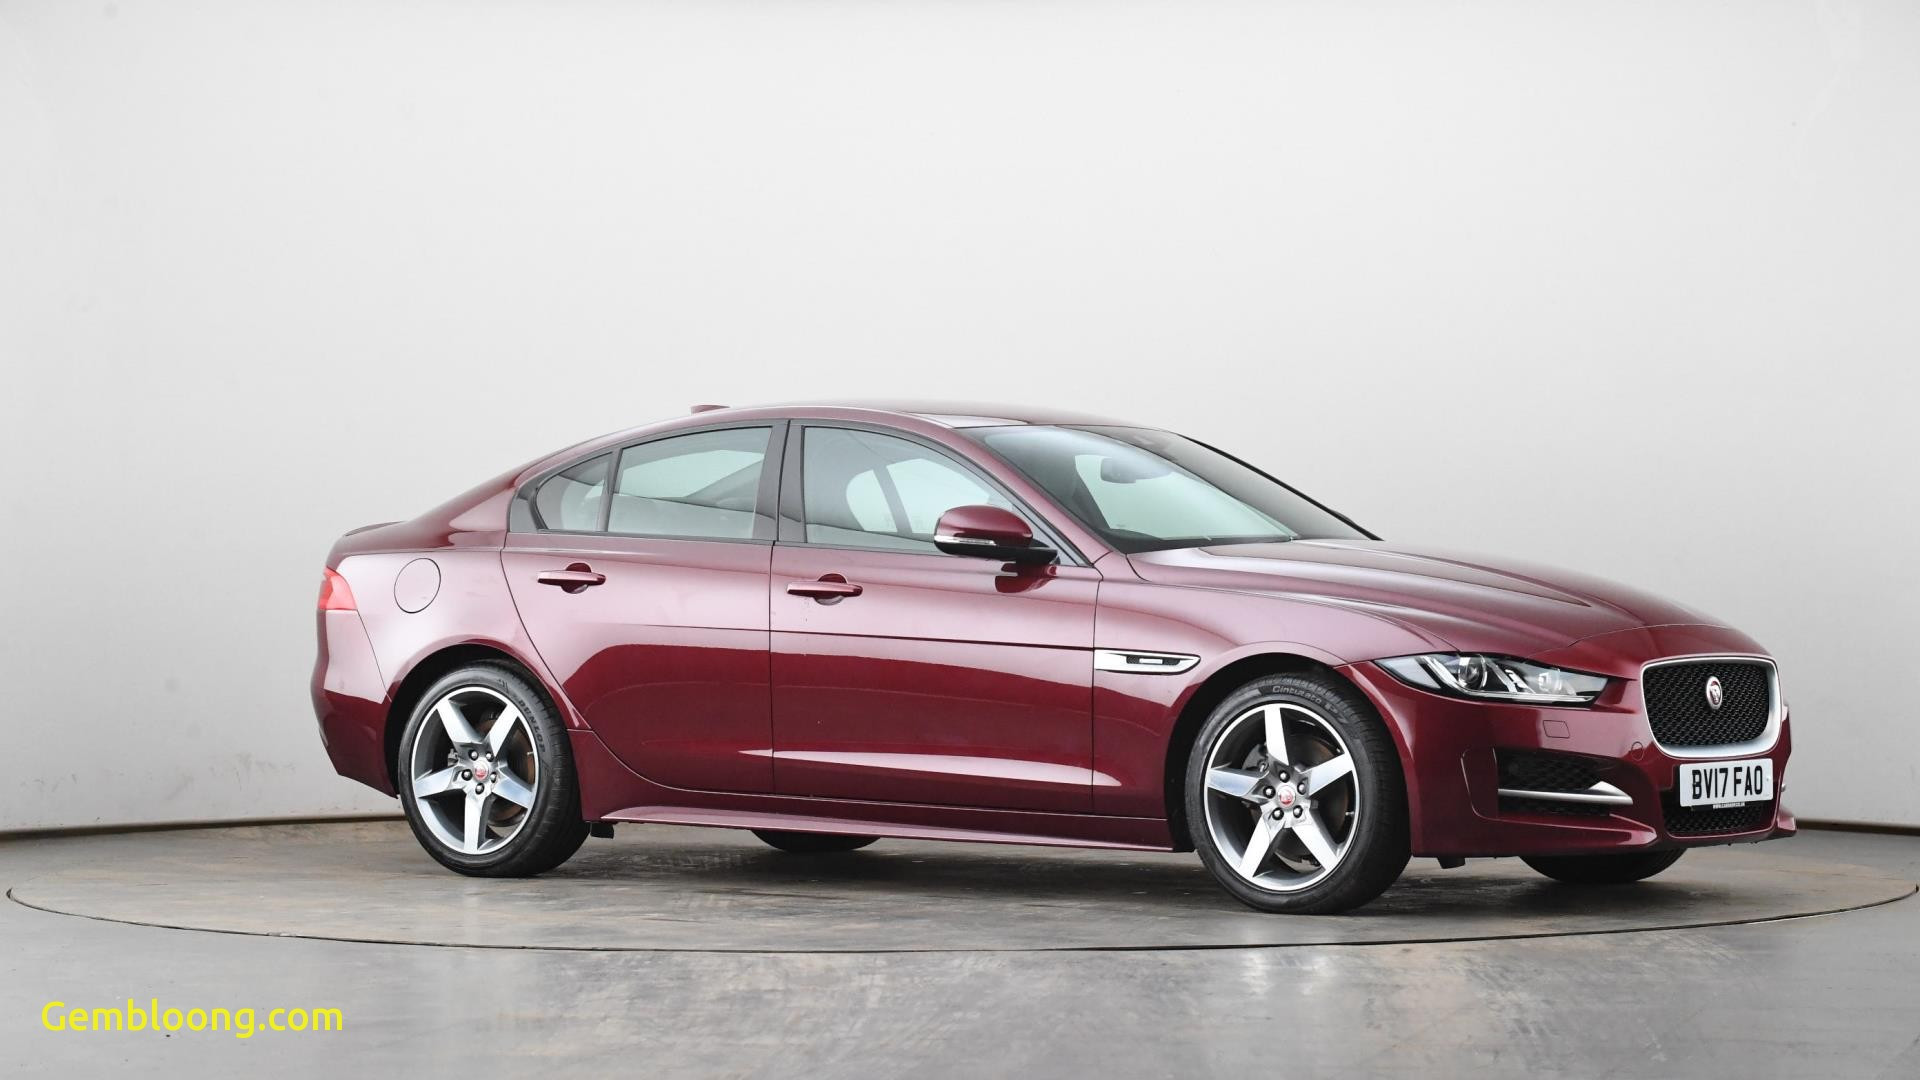 Awesome Used Jaguar Cars for Sale Near Me